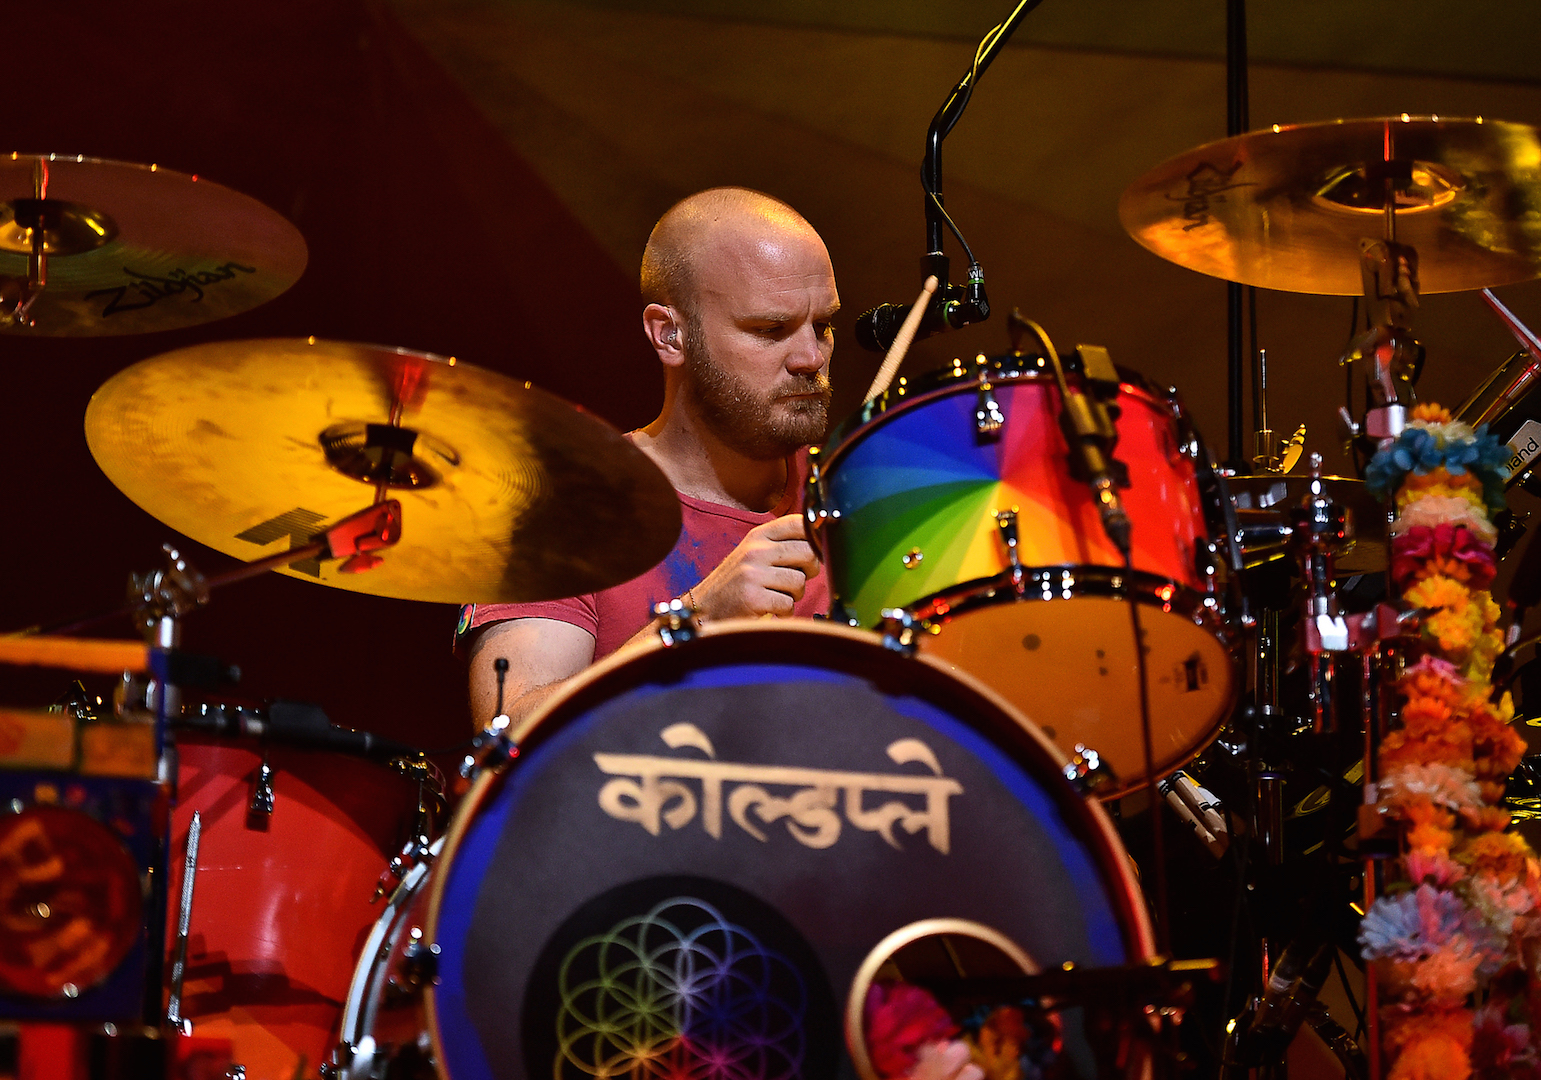 BURBANK, CA - NOVEMBER 19: Drummer Will Champion of Coldplay performs on stage at iHeartMedia Presents The iHeartRadio Album Release Party at iHeartRadio Theater on November 19, 2015 in Burbank, California.  (Photo by Mike Windle/Getty Images for iHeartMedia) *** Local Caption *** Will Champion